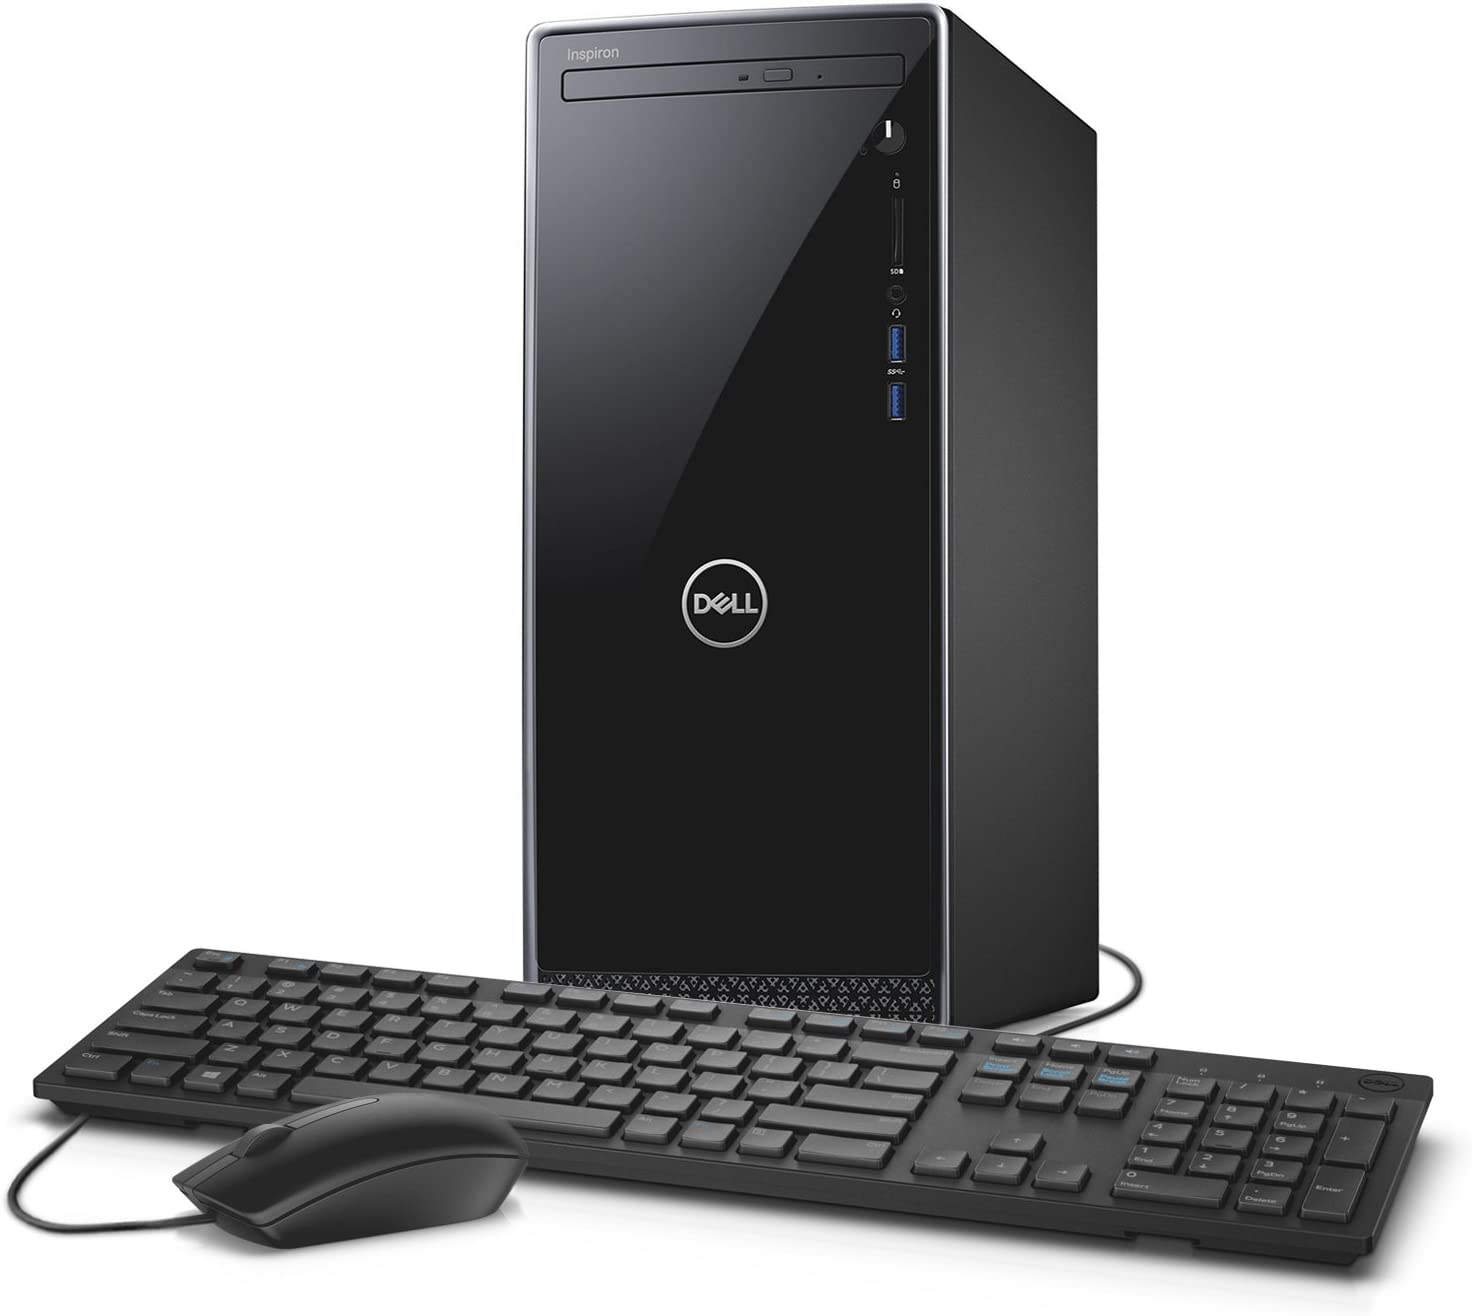 Dell Inspiron i3668 Desktop – 7th Gen Intel Dual Core i3-7100 Processor, 8GB DDR4 Memory, 256GB Solid State Drive 1TB SATA Hard Drive, Intel HD Graphics, DVD Burner, Windows 10